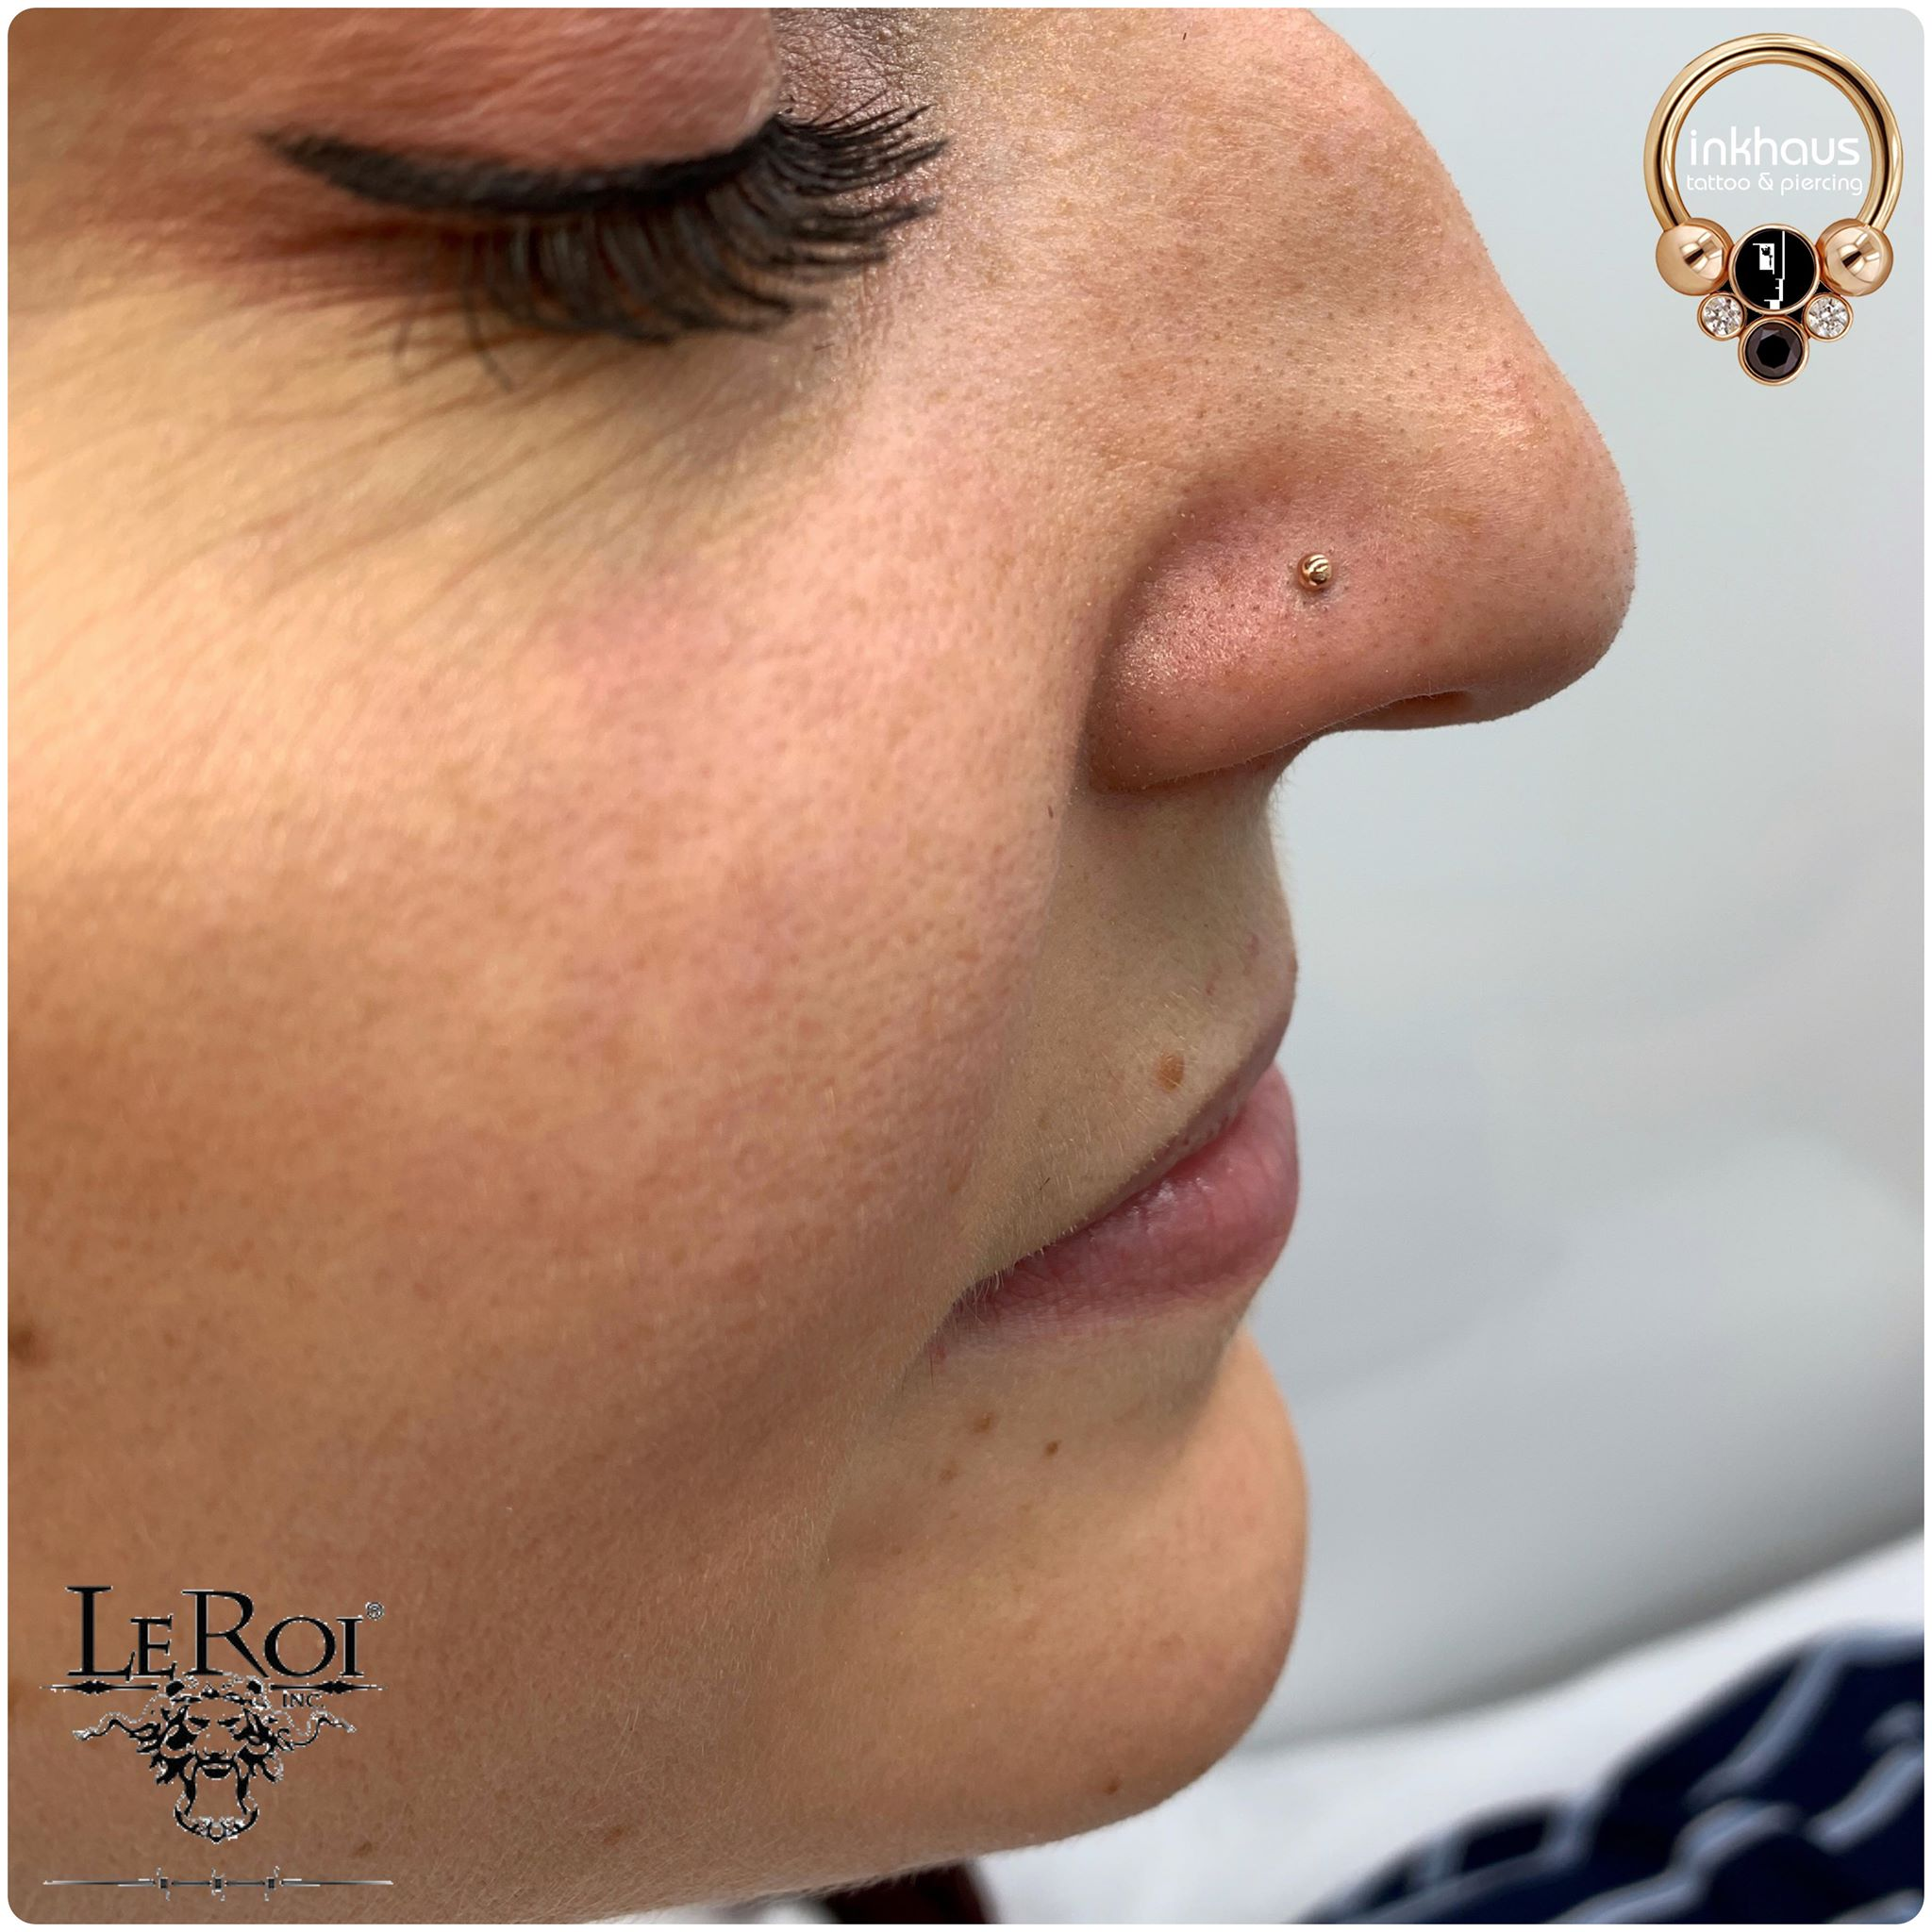 Nose Piercings Inkhaus Tattoo And Piercing